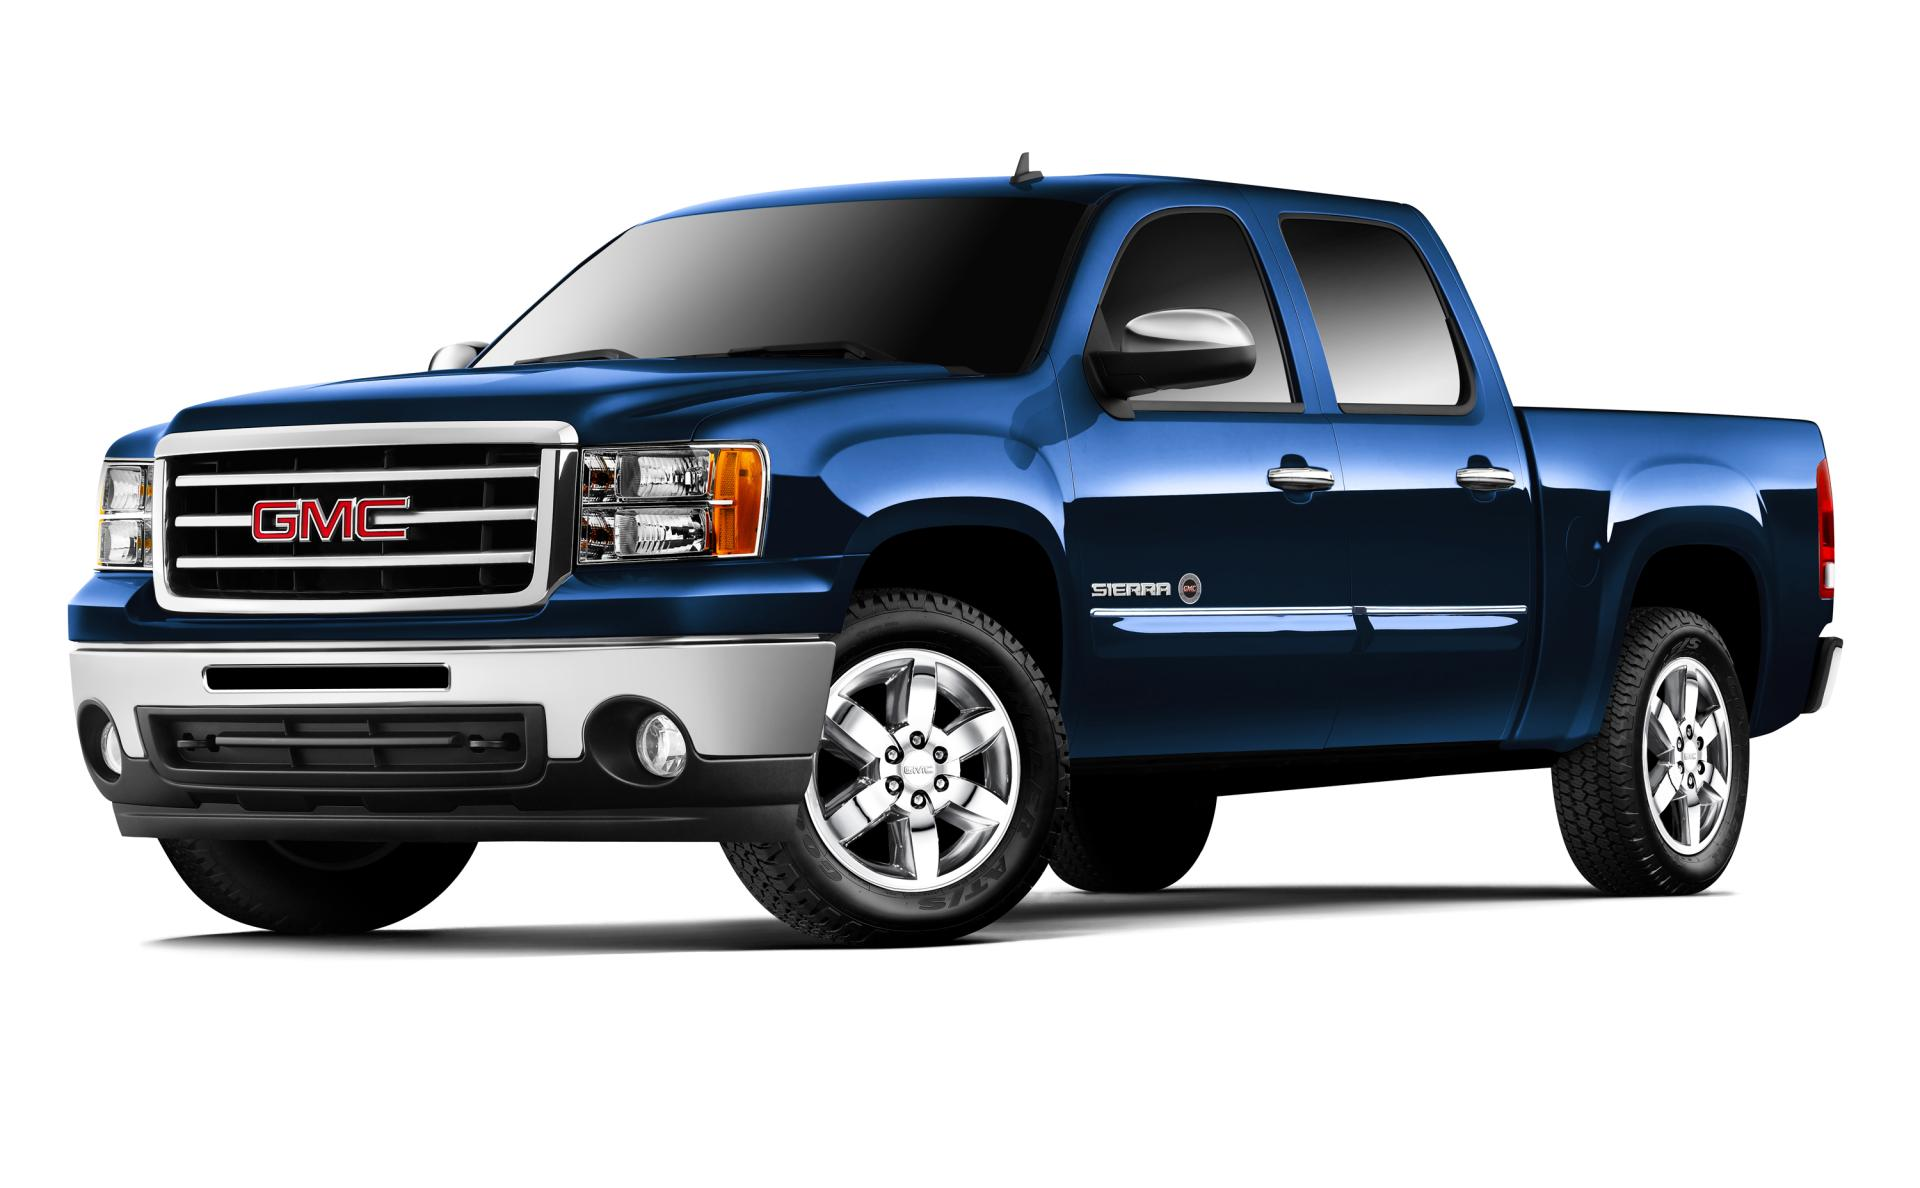 GMC Sierra Heritage Edition pictures and wallpaper